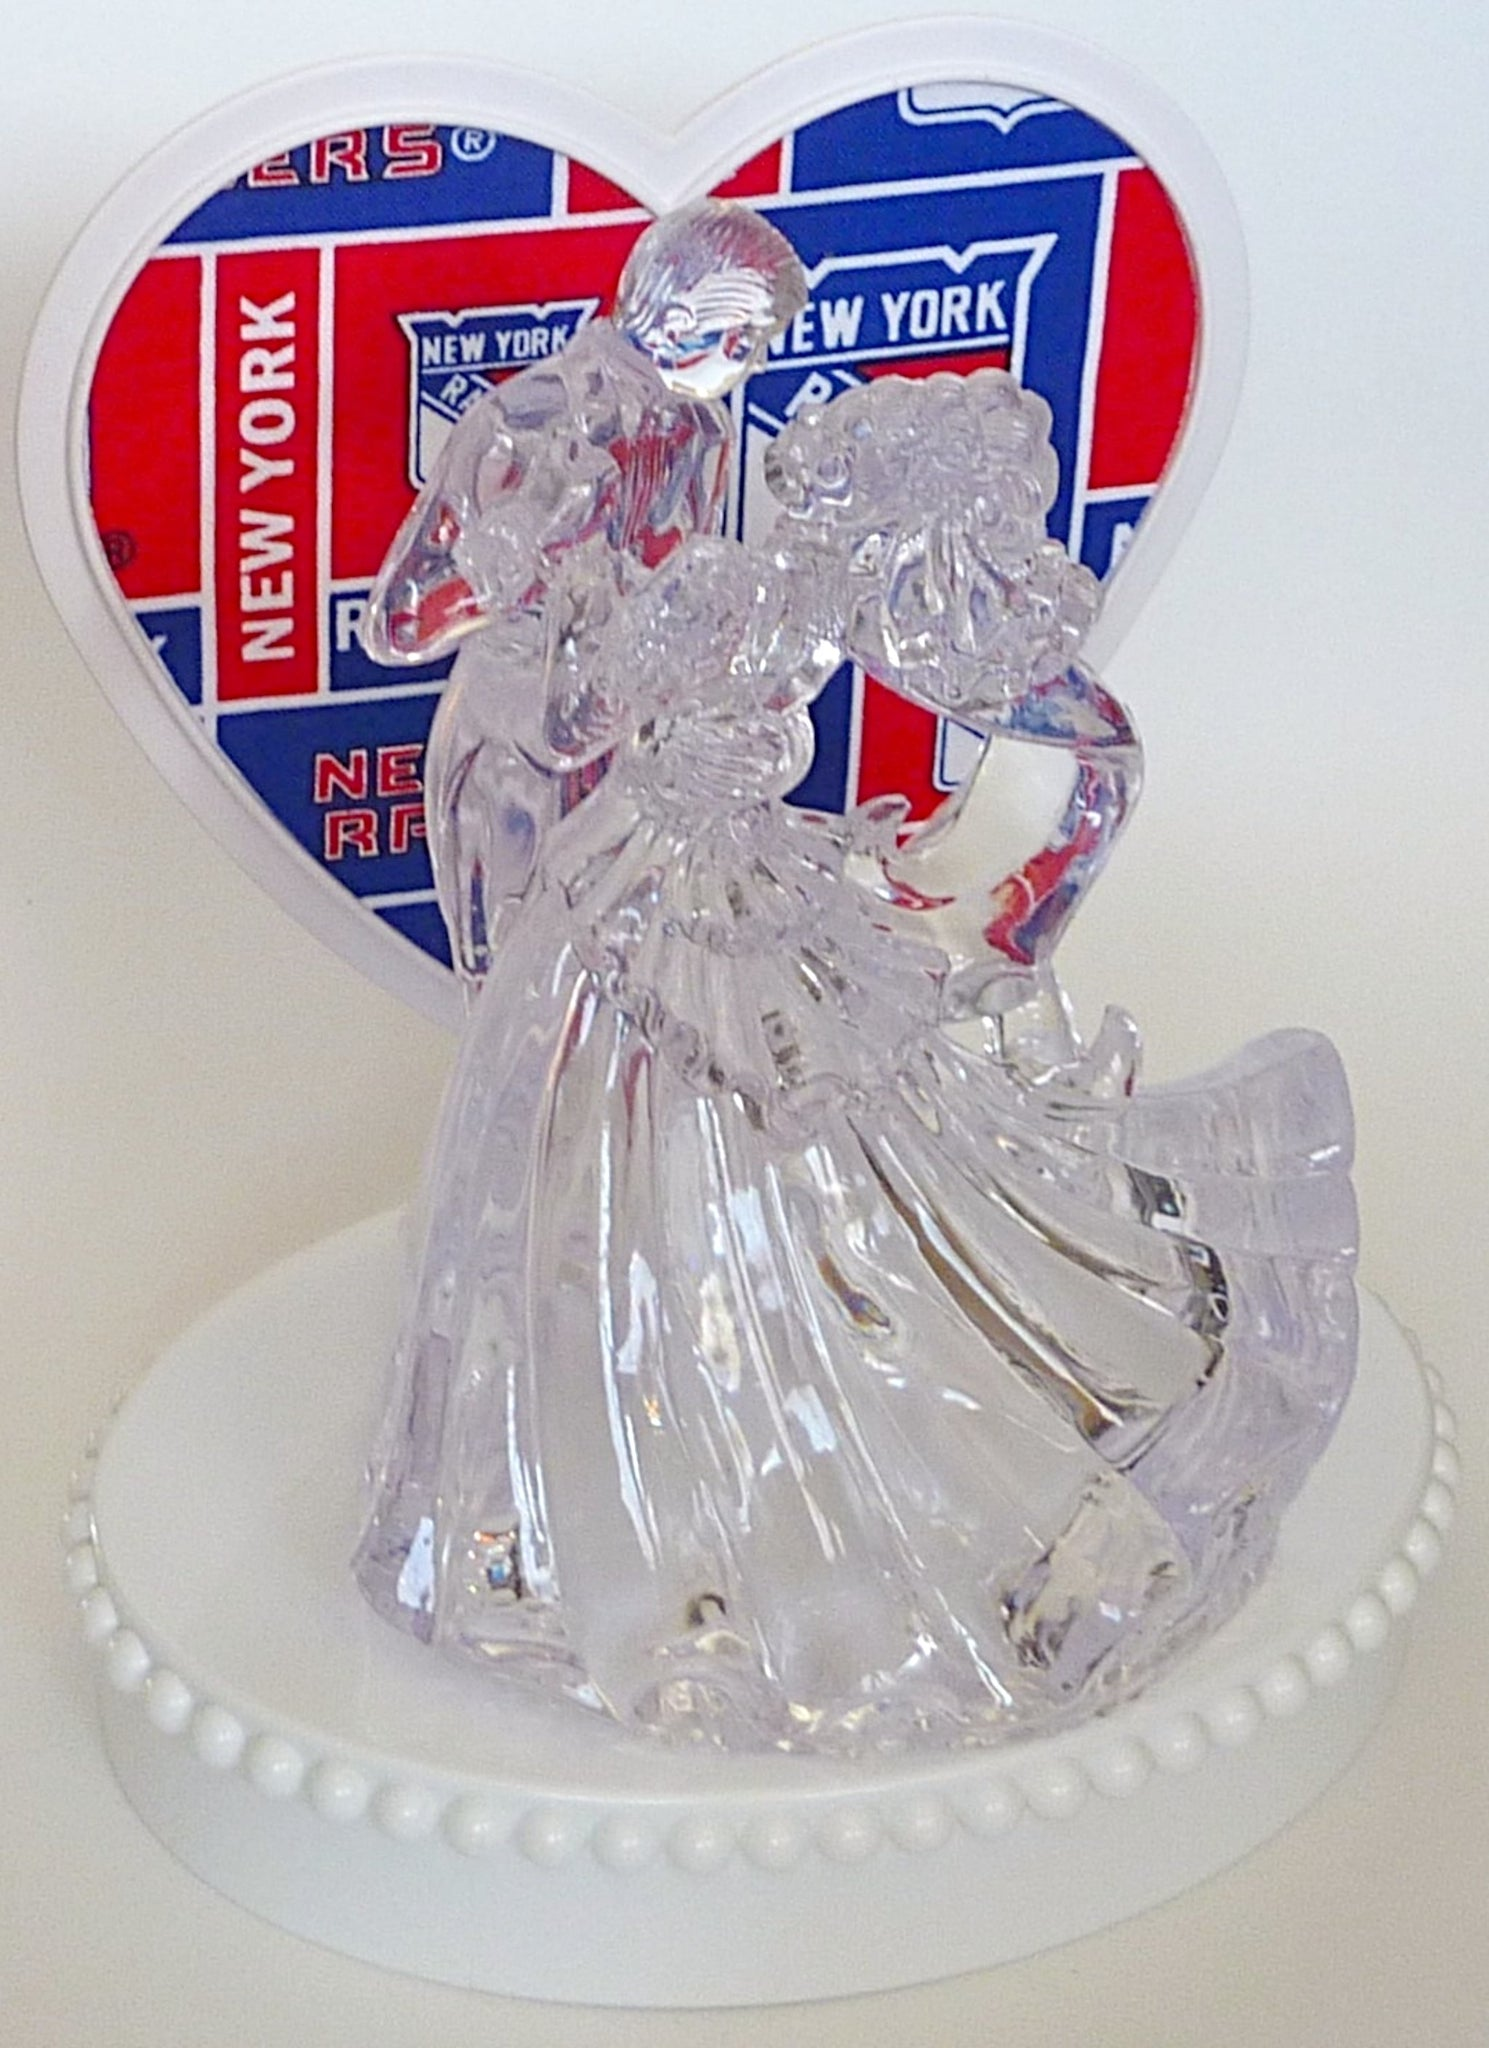 New York Rangers wedding cake topper reception bridal shower gift idea pretty unique Fun Wedding Things bride and groom first dance